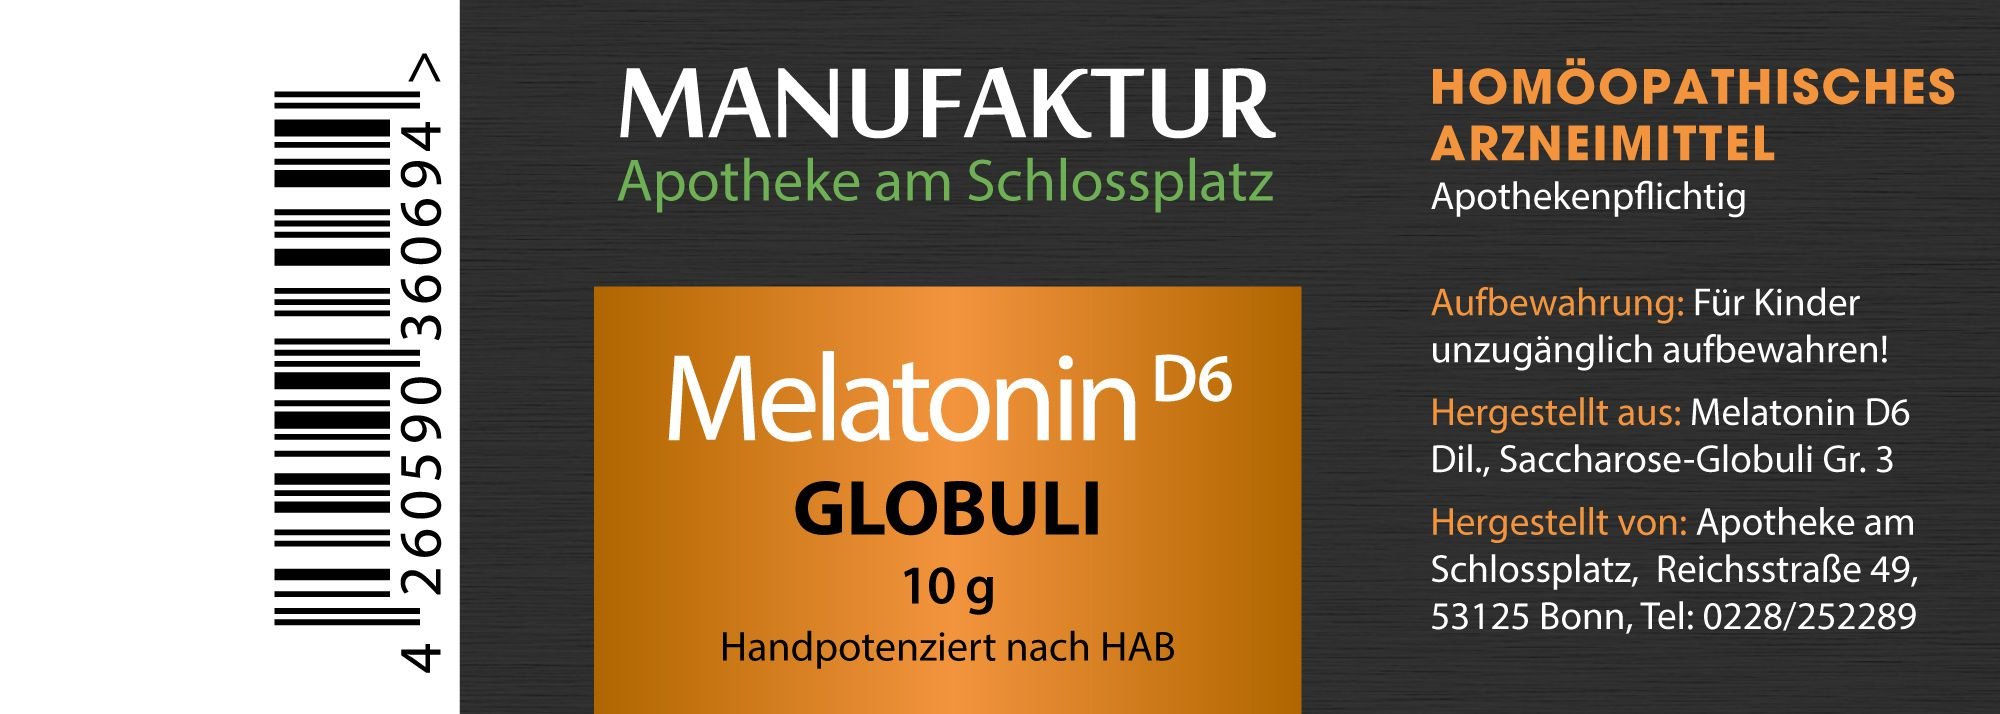 Melatonin D6 Globuli